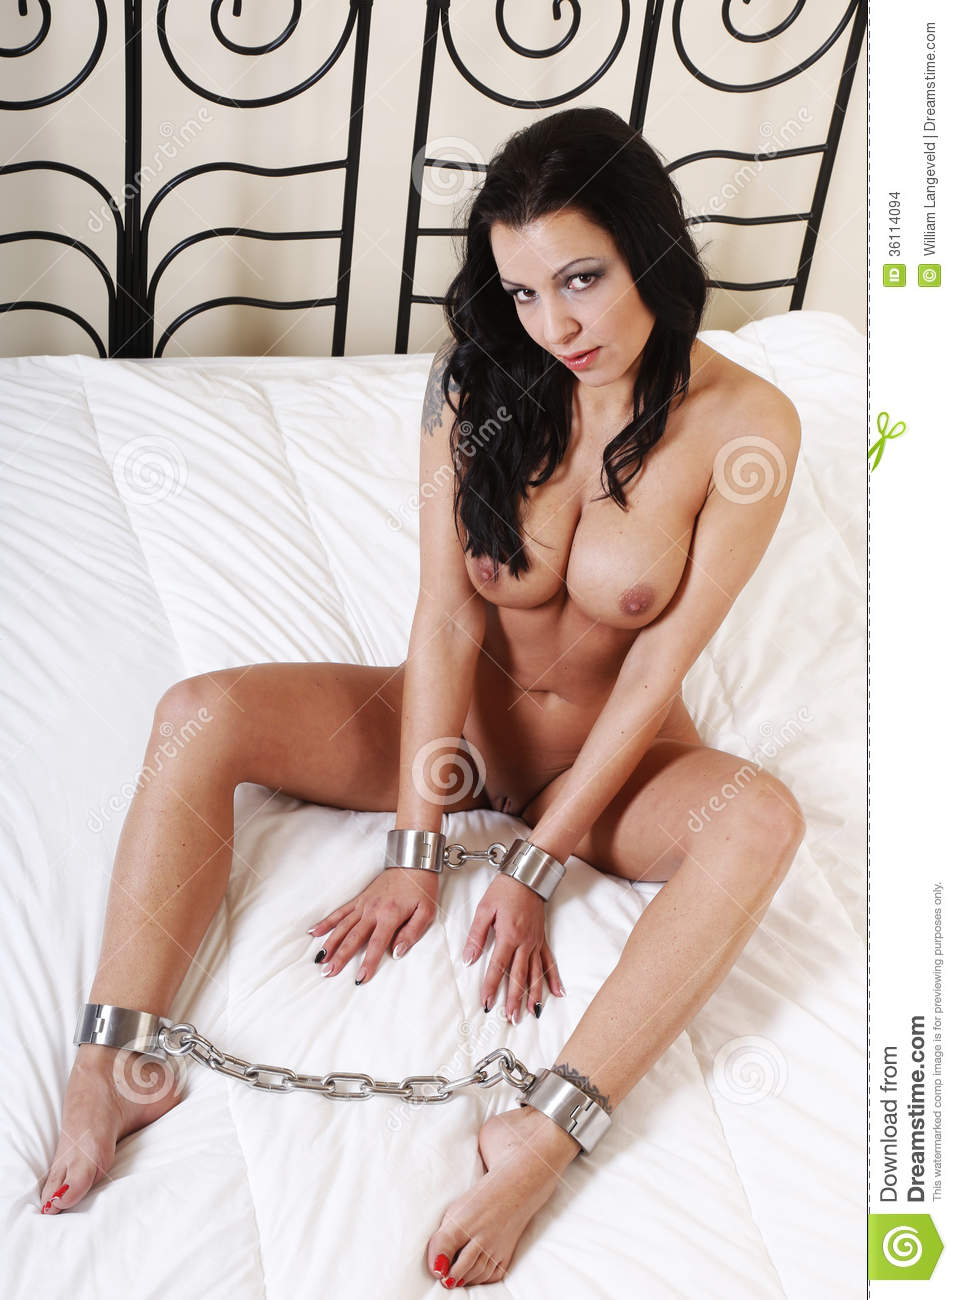 Impossible. Cuffed girls nude not agree